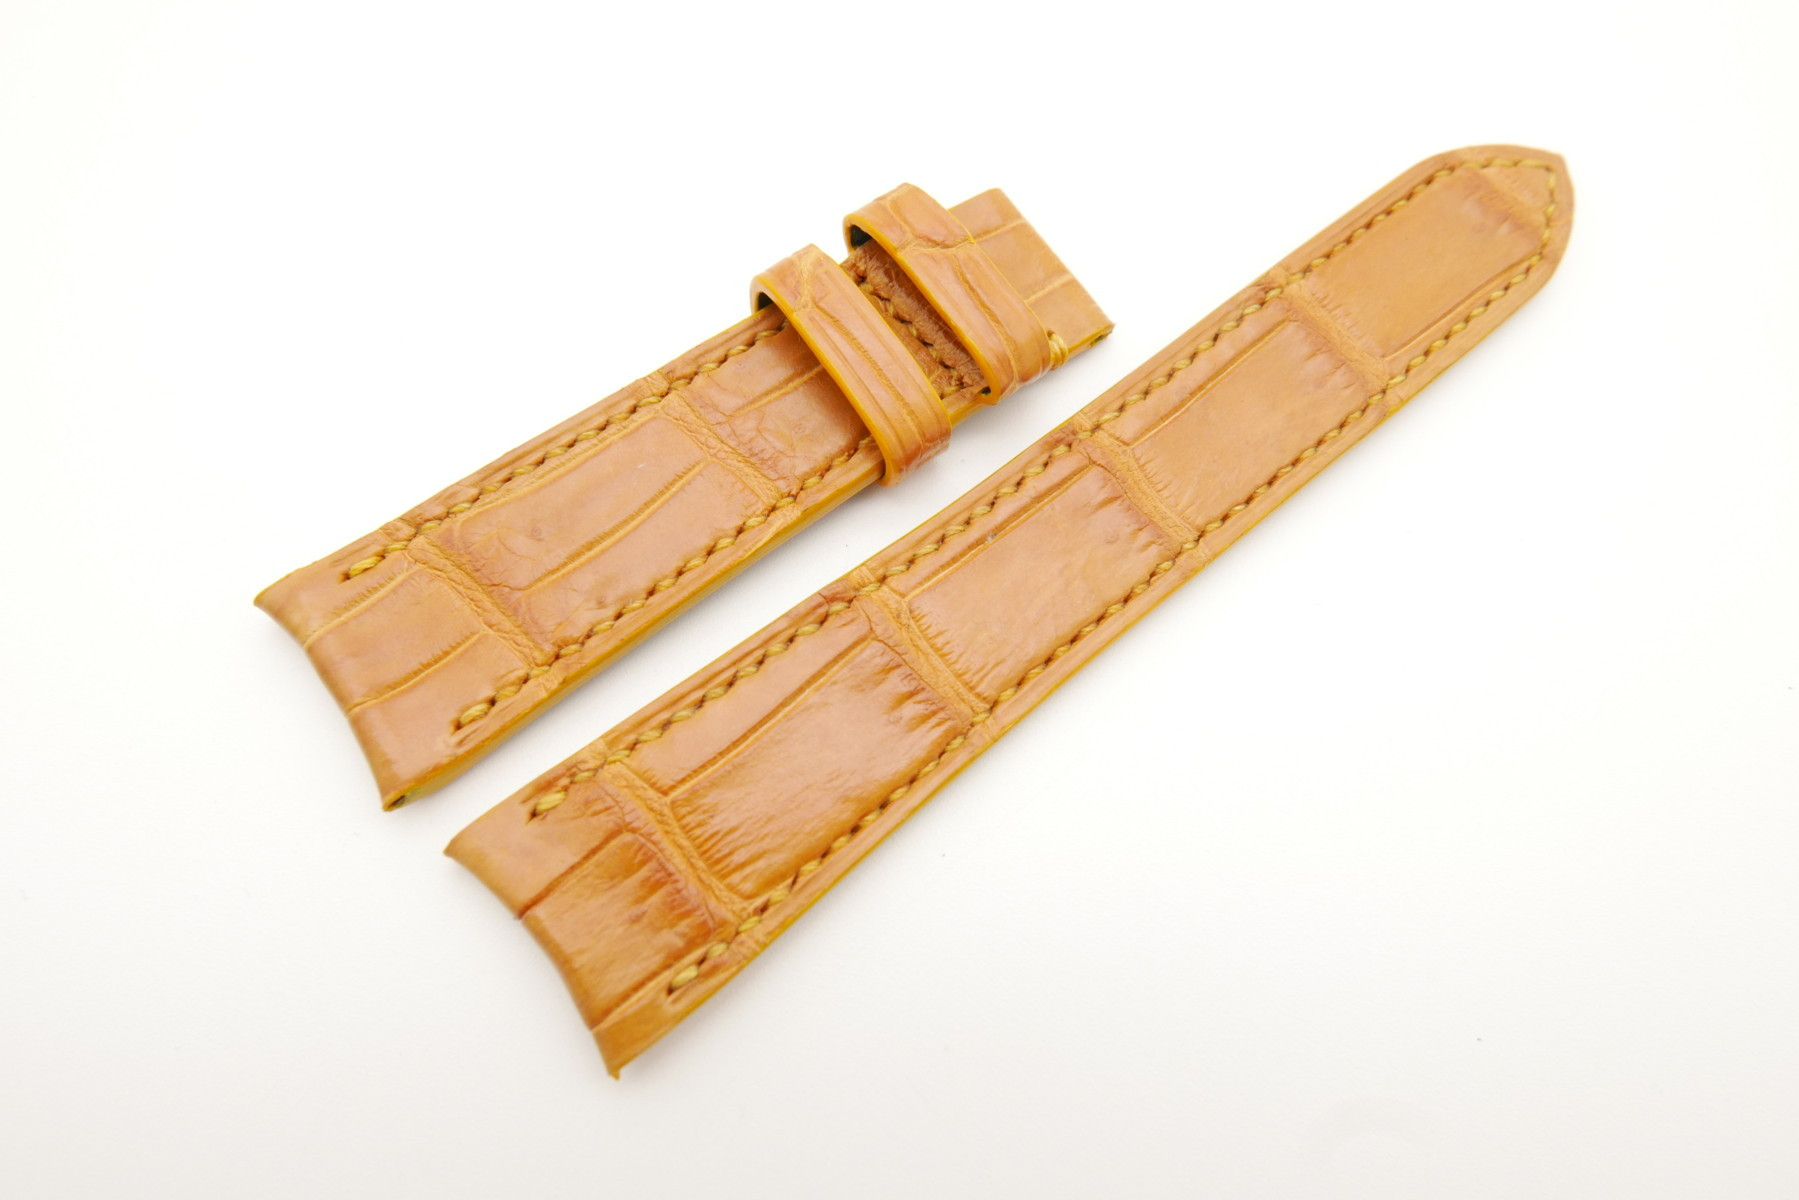 21mm/18mm Tan Brown Genuine Crocodile Skin Leather Curved End Watch Strap For JLC #WT3469